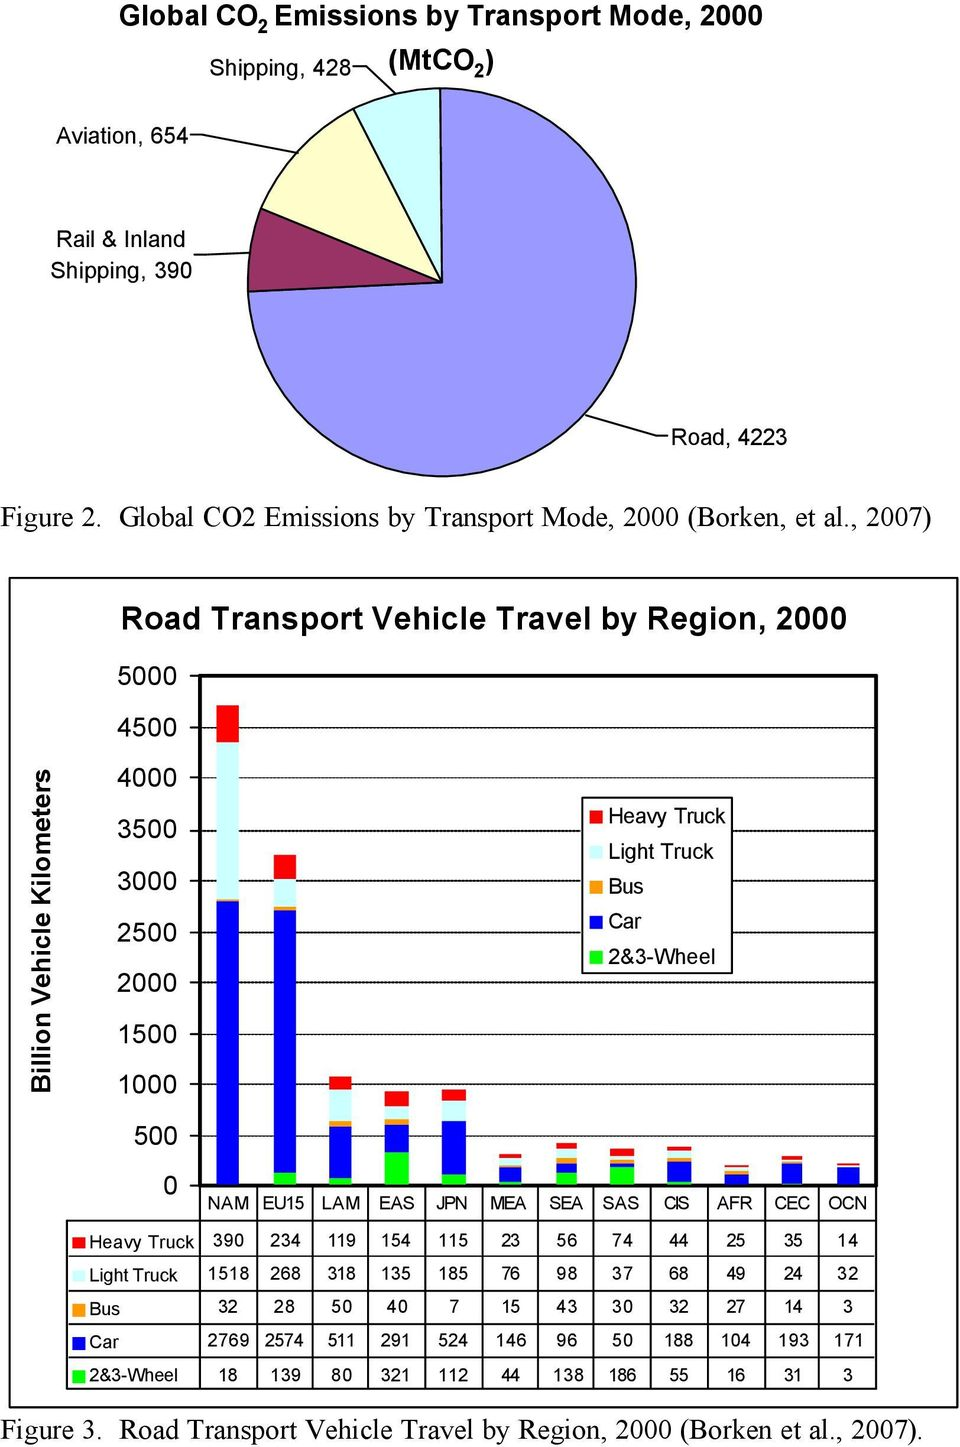 , 2007) Road Transport Vehicle Travel by Region, 2000 5000 4500 Billion Vehicle Kilometers 4000 3500 3000 2500 2000 1500 1000 500 0 Heavy Truck Light Truck Bus Car 2&3-Wheel NAM EU15